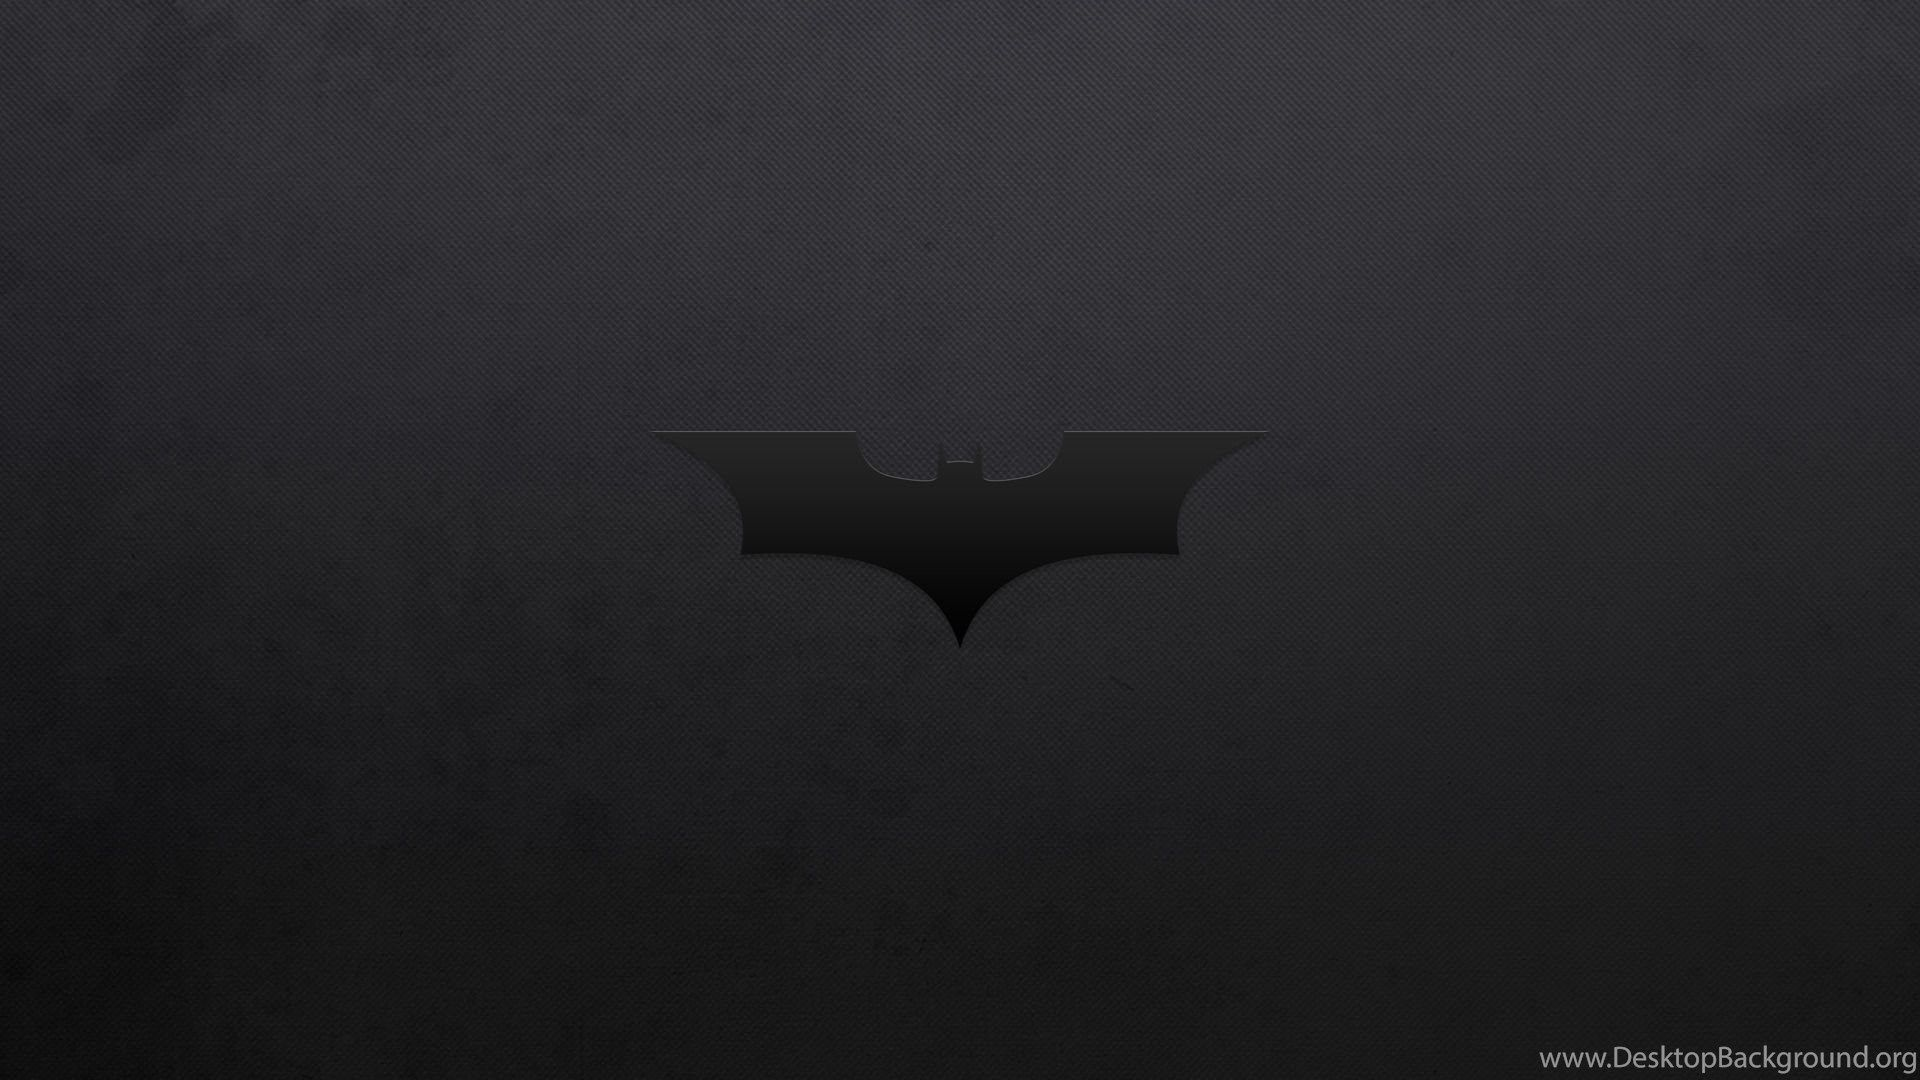 Download Batman Logo Wallpapers Populardesktop Background